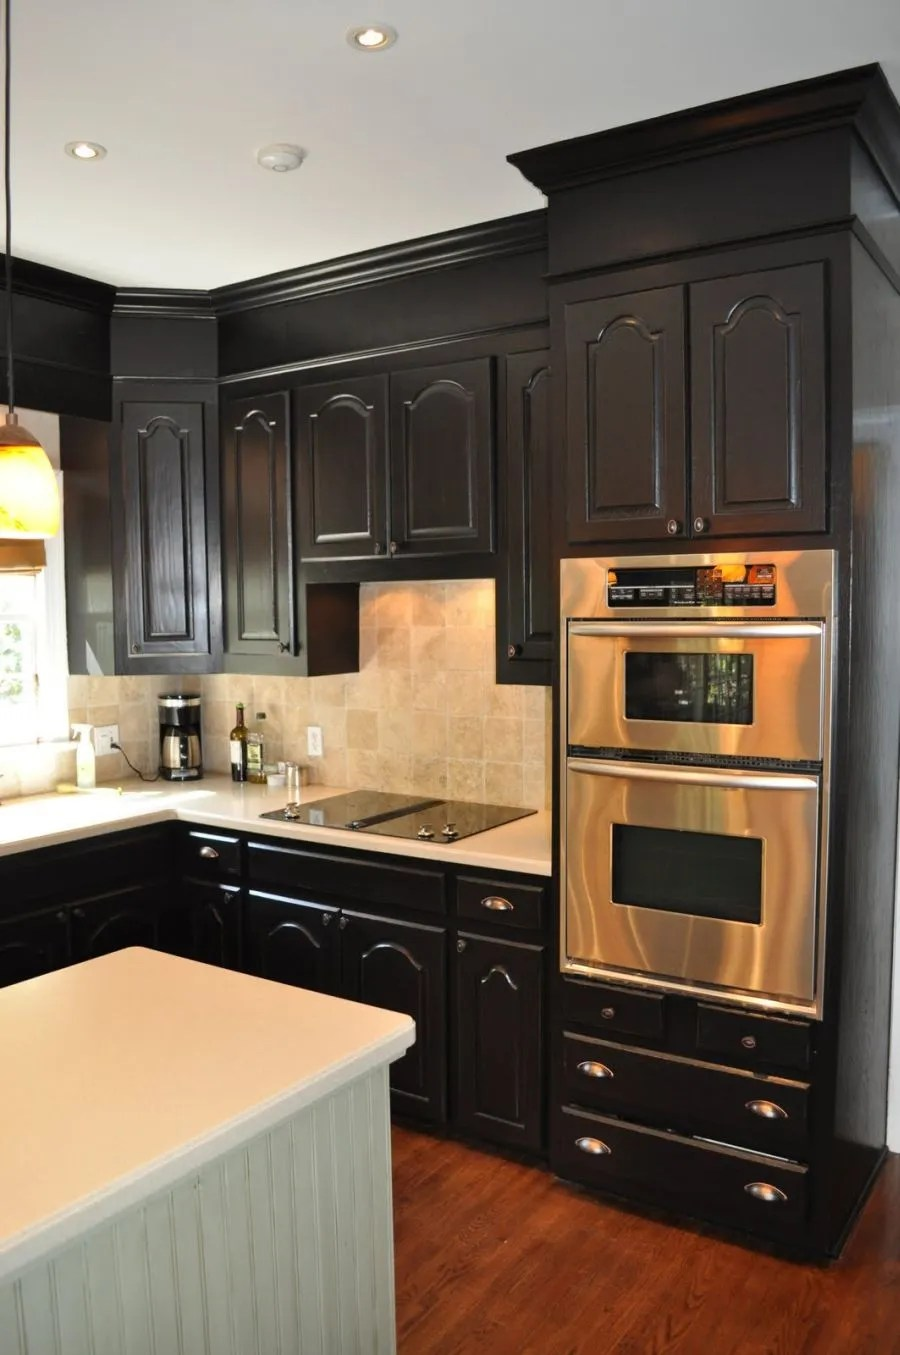 black kitchen cabinets Soffits Kitchen Cabinets With Legs